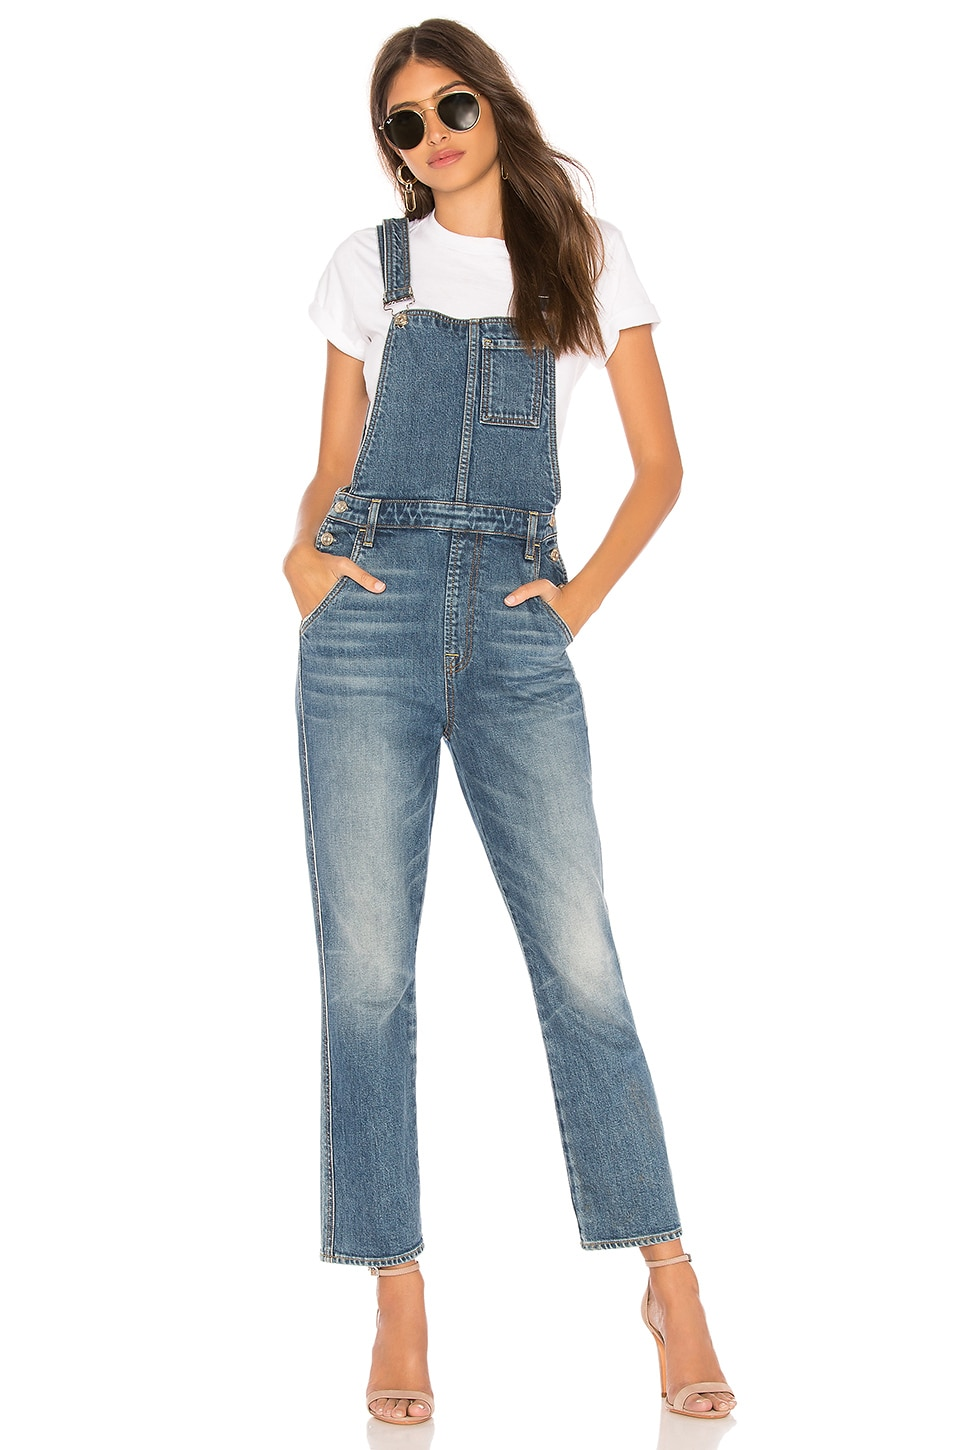 7 For All Mankind Edie Overall in Mojave Dusk